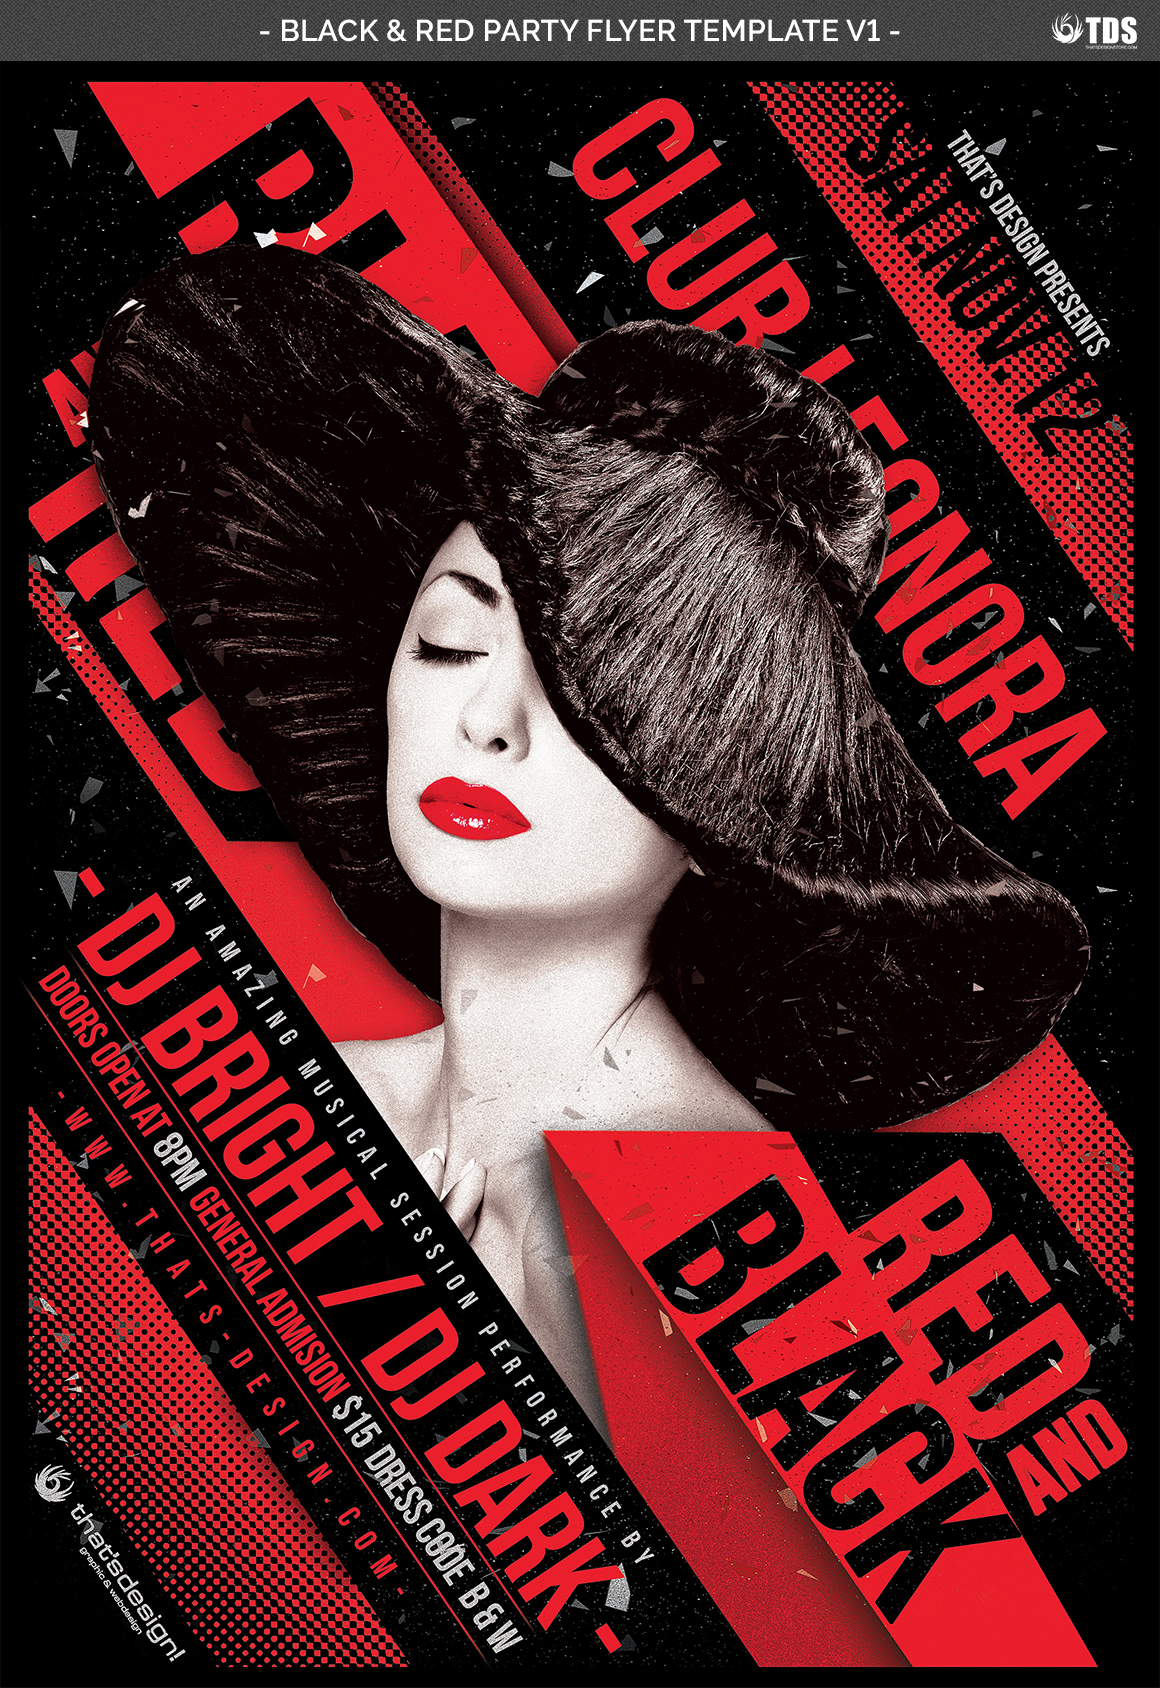 Black and Red Party Flyer Template V1 example image 4